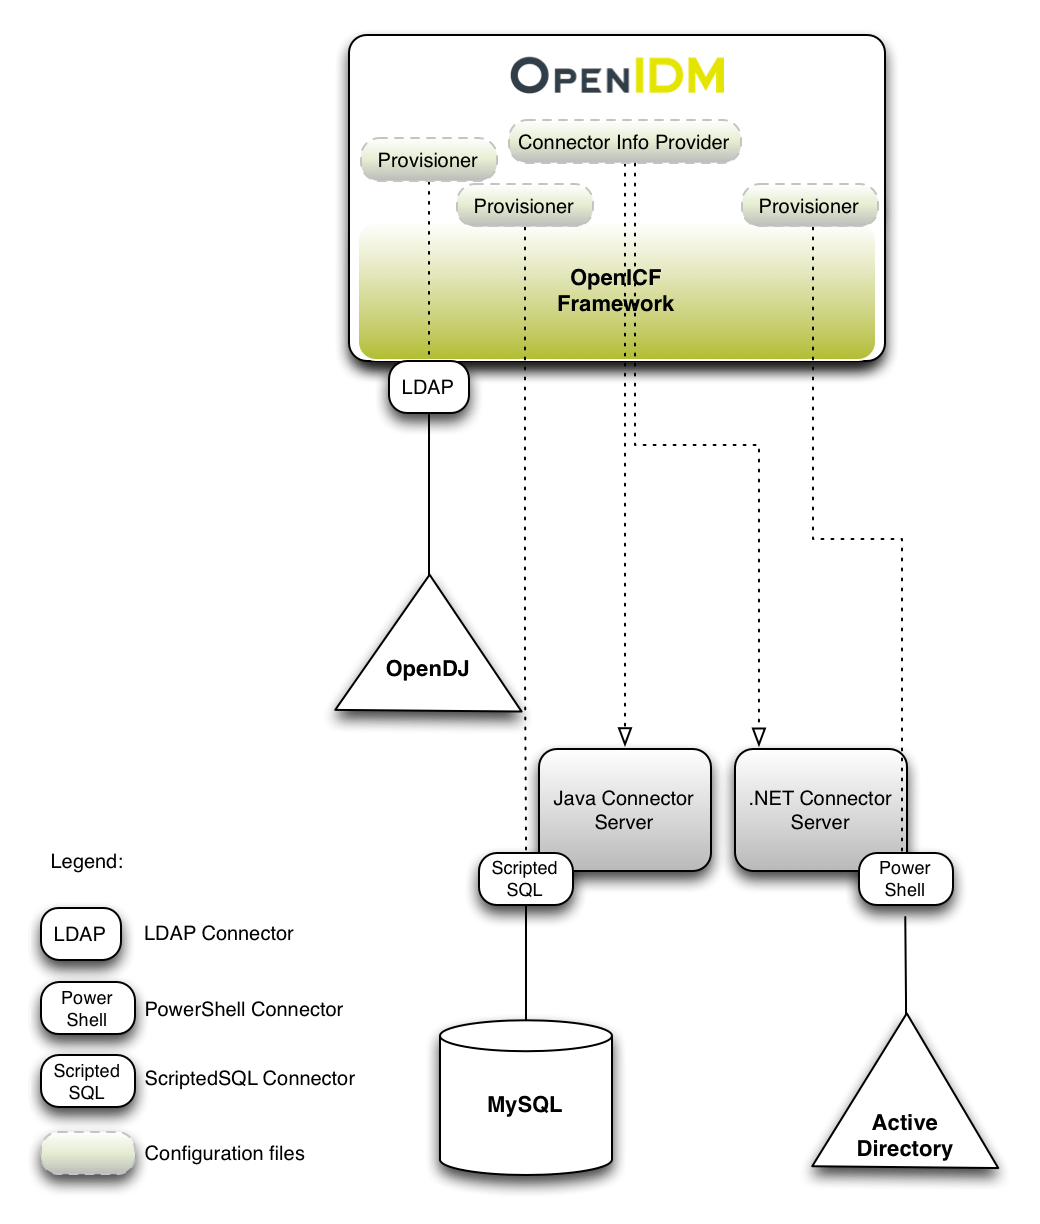 jvm architecture diagram 7 wire trailer wiring troubleshooting openidm 4 gt integrator 39s guide